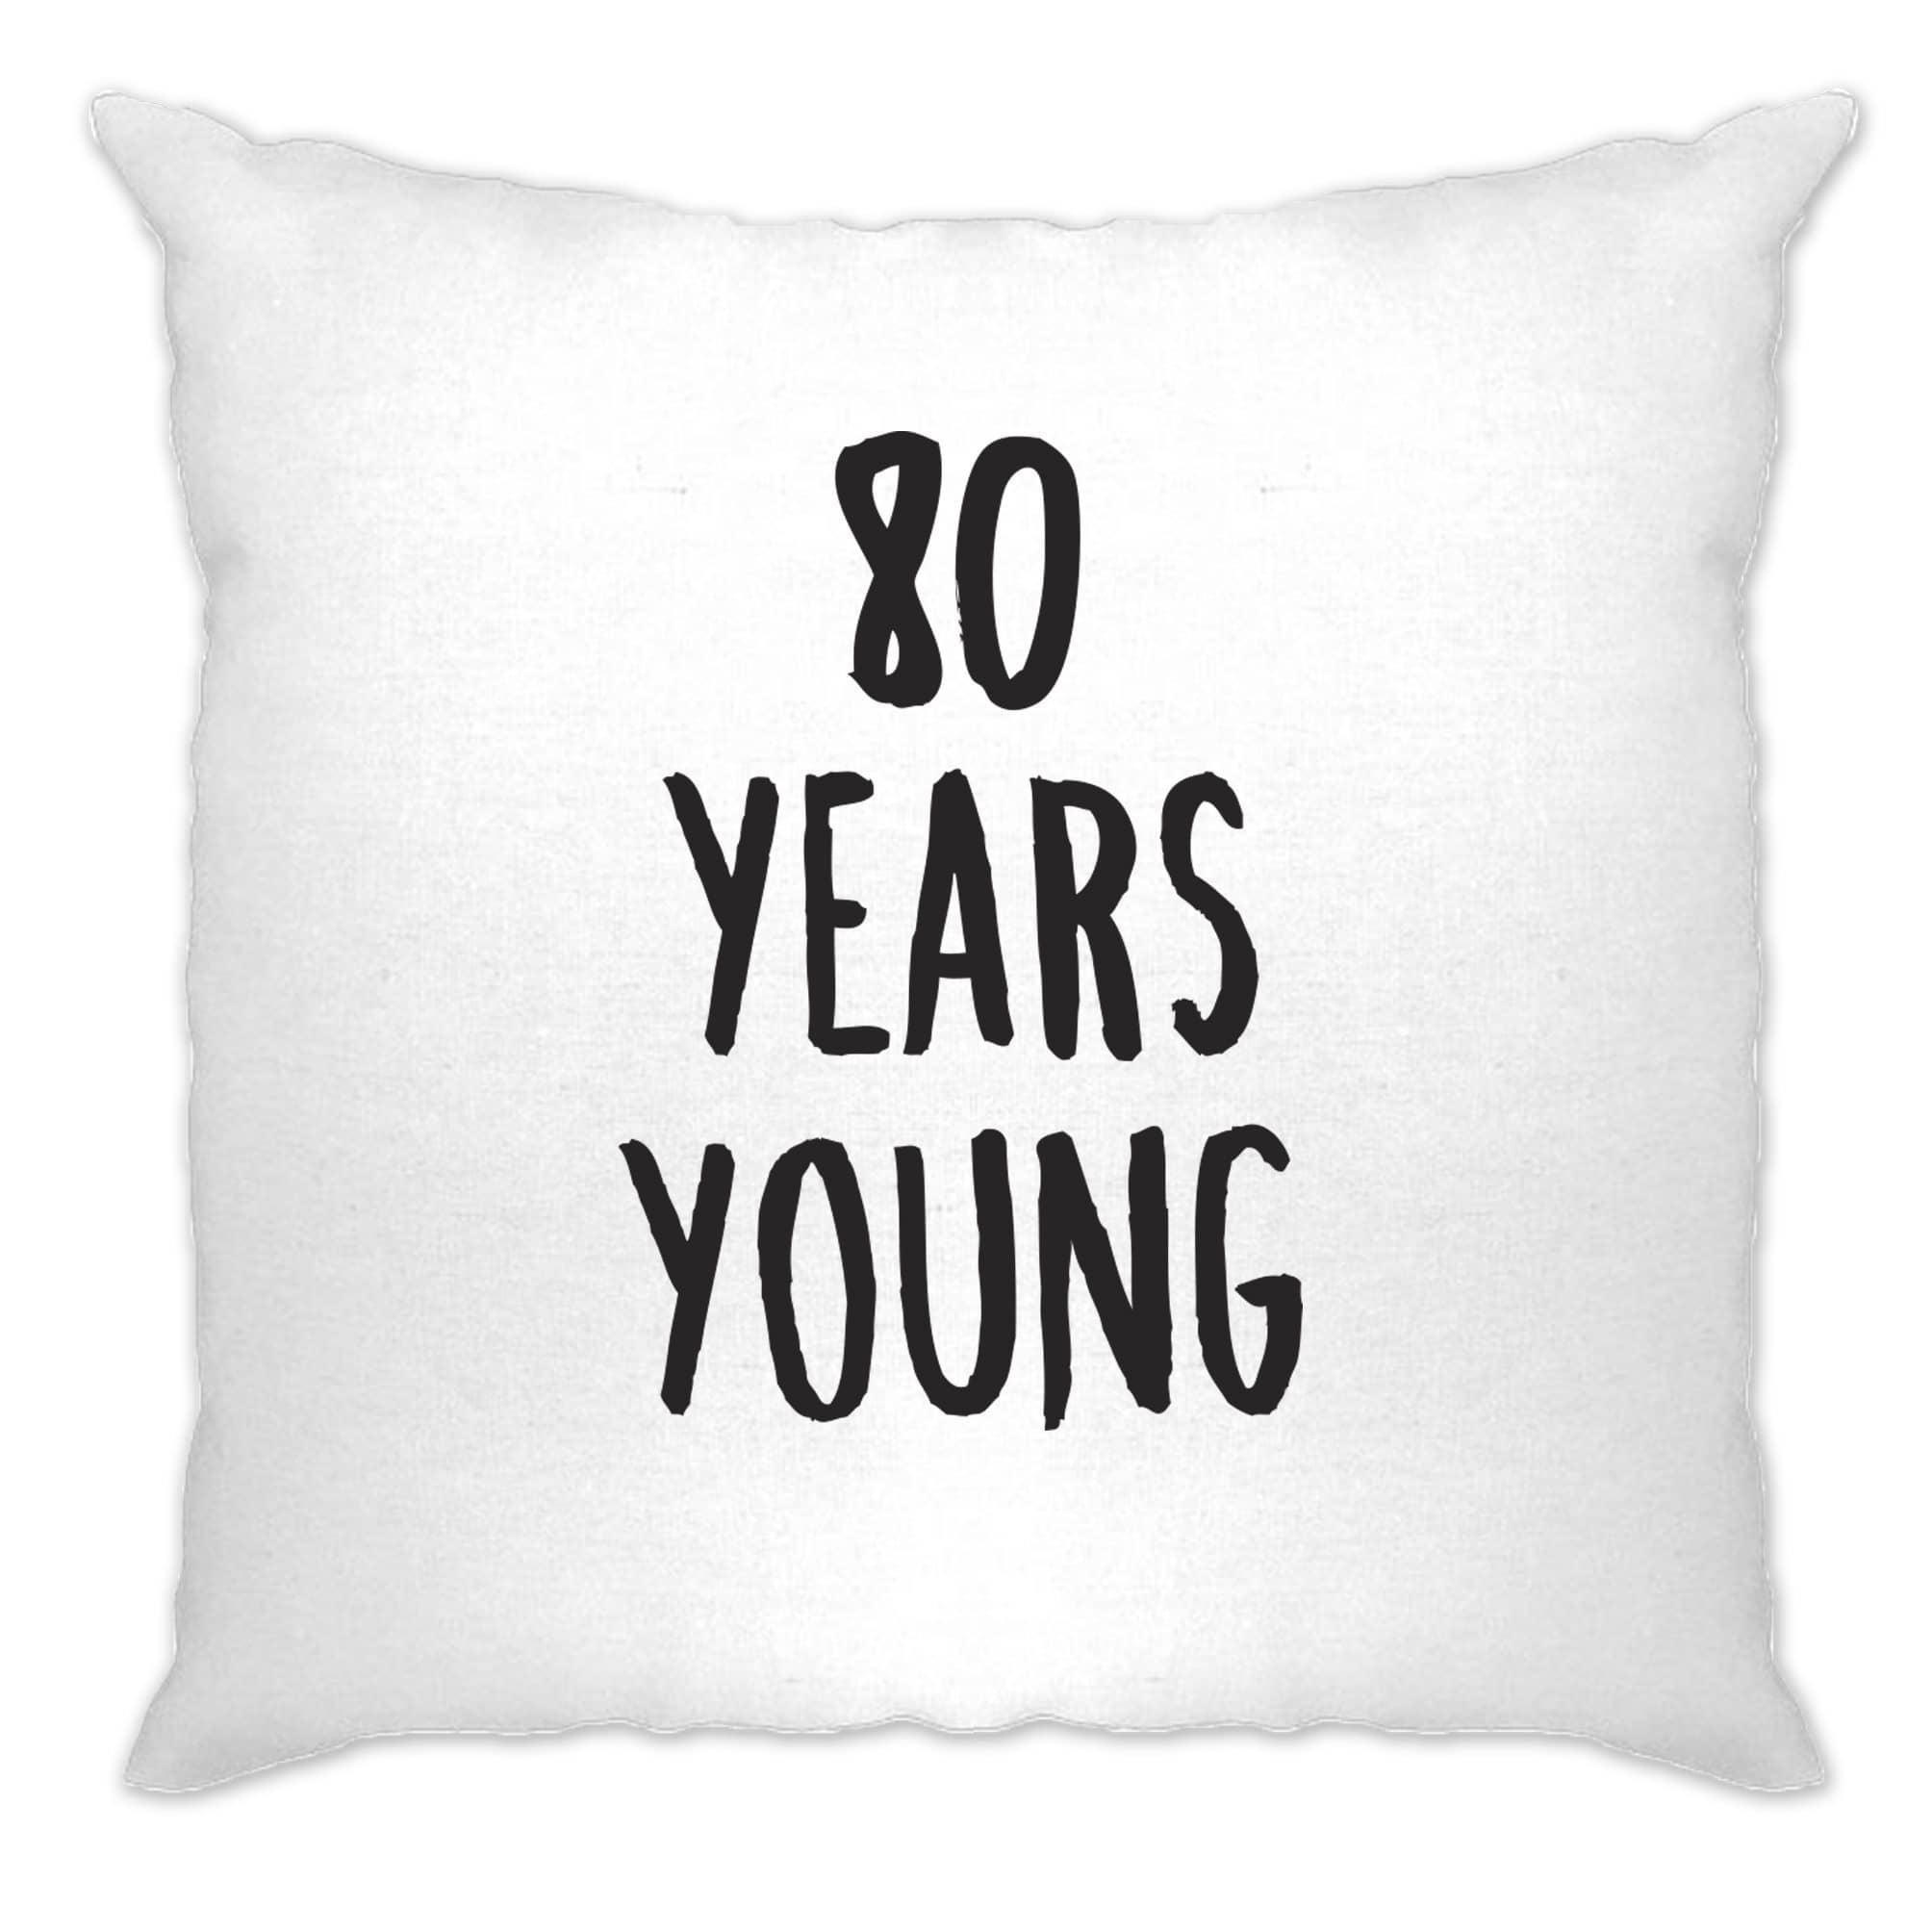 80th Birthday Joke Cushion Cover 80 Years Young Novelty Text